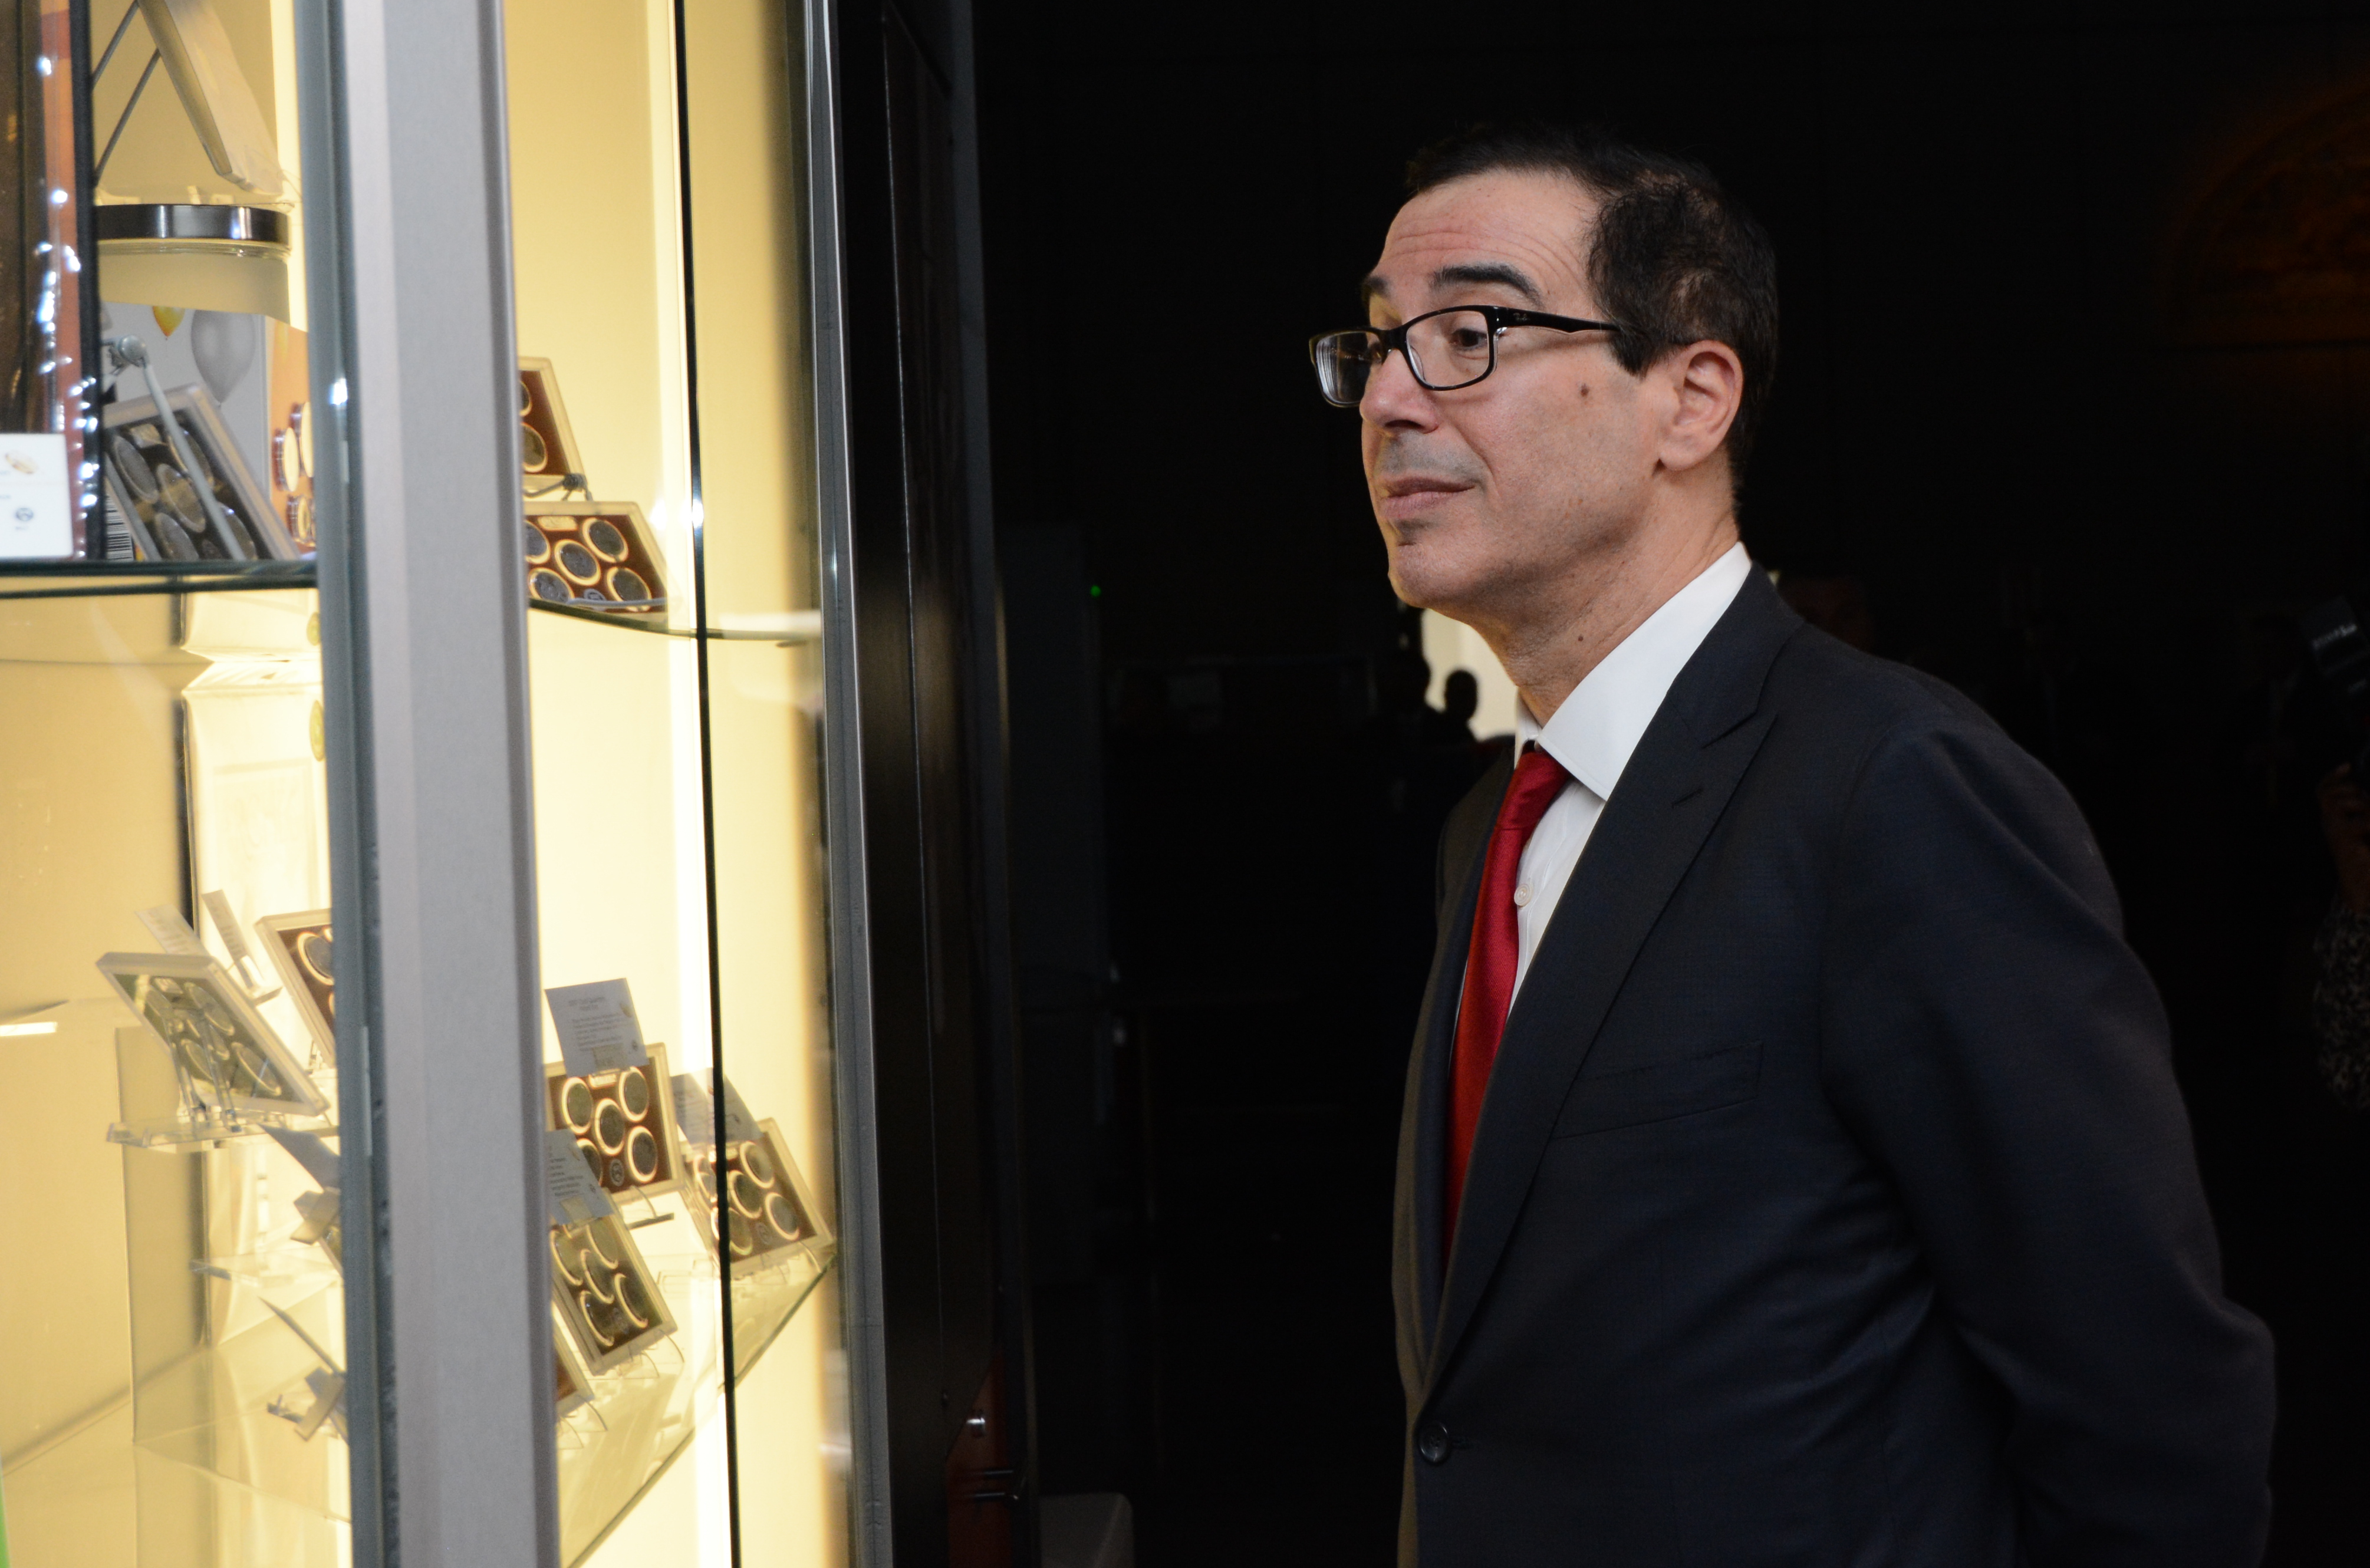 Treasury Secretary Steven Mnuchin looks at numismatic products at the gift shop following his visit of the U.S. Mint facility in Philadelphia. U.S. Mint photo by Jill Westeyn.